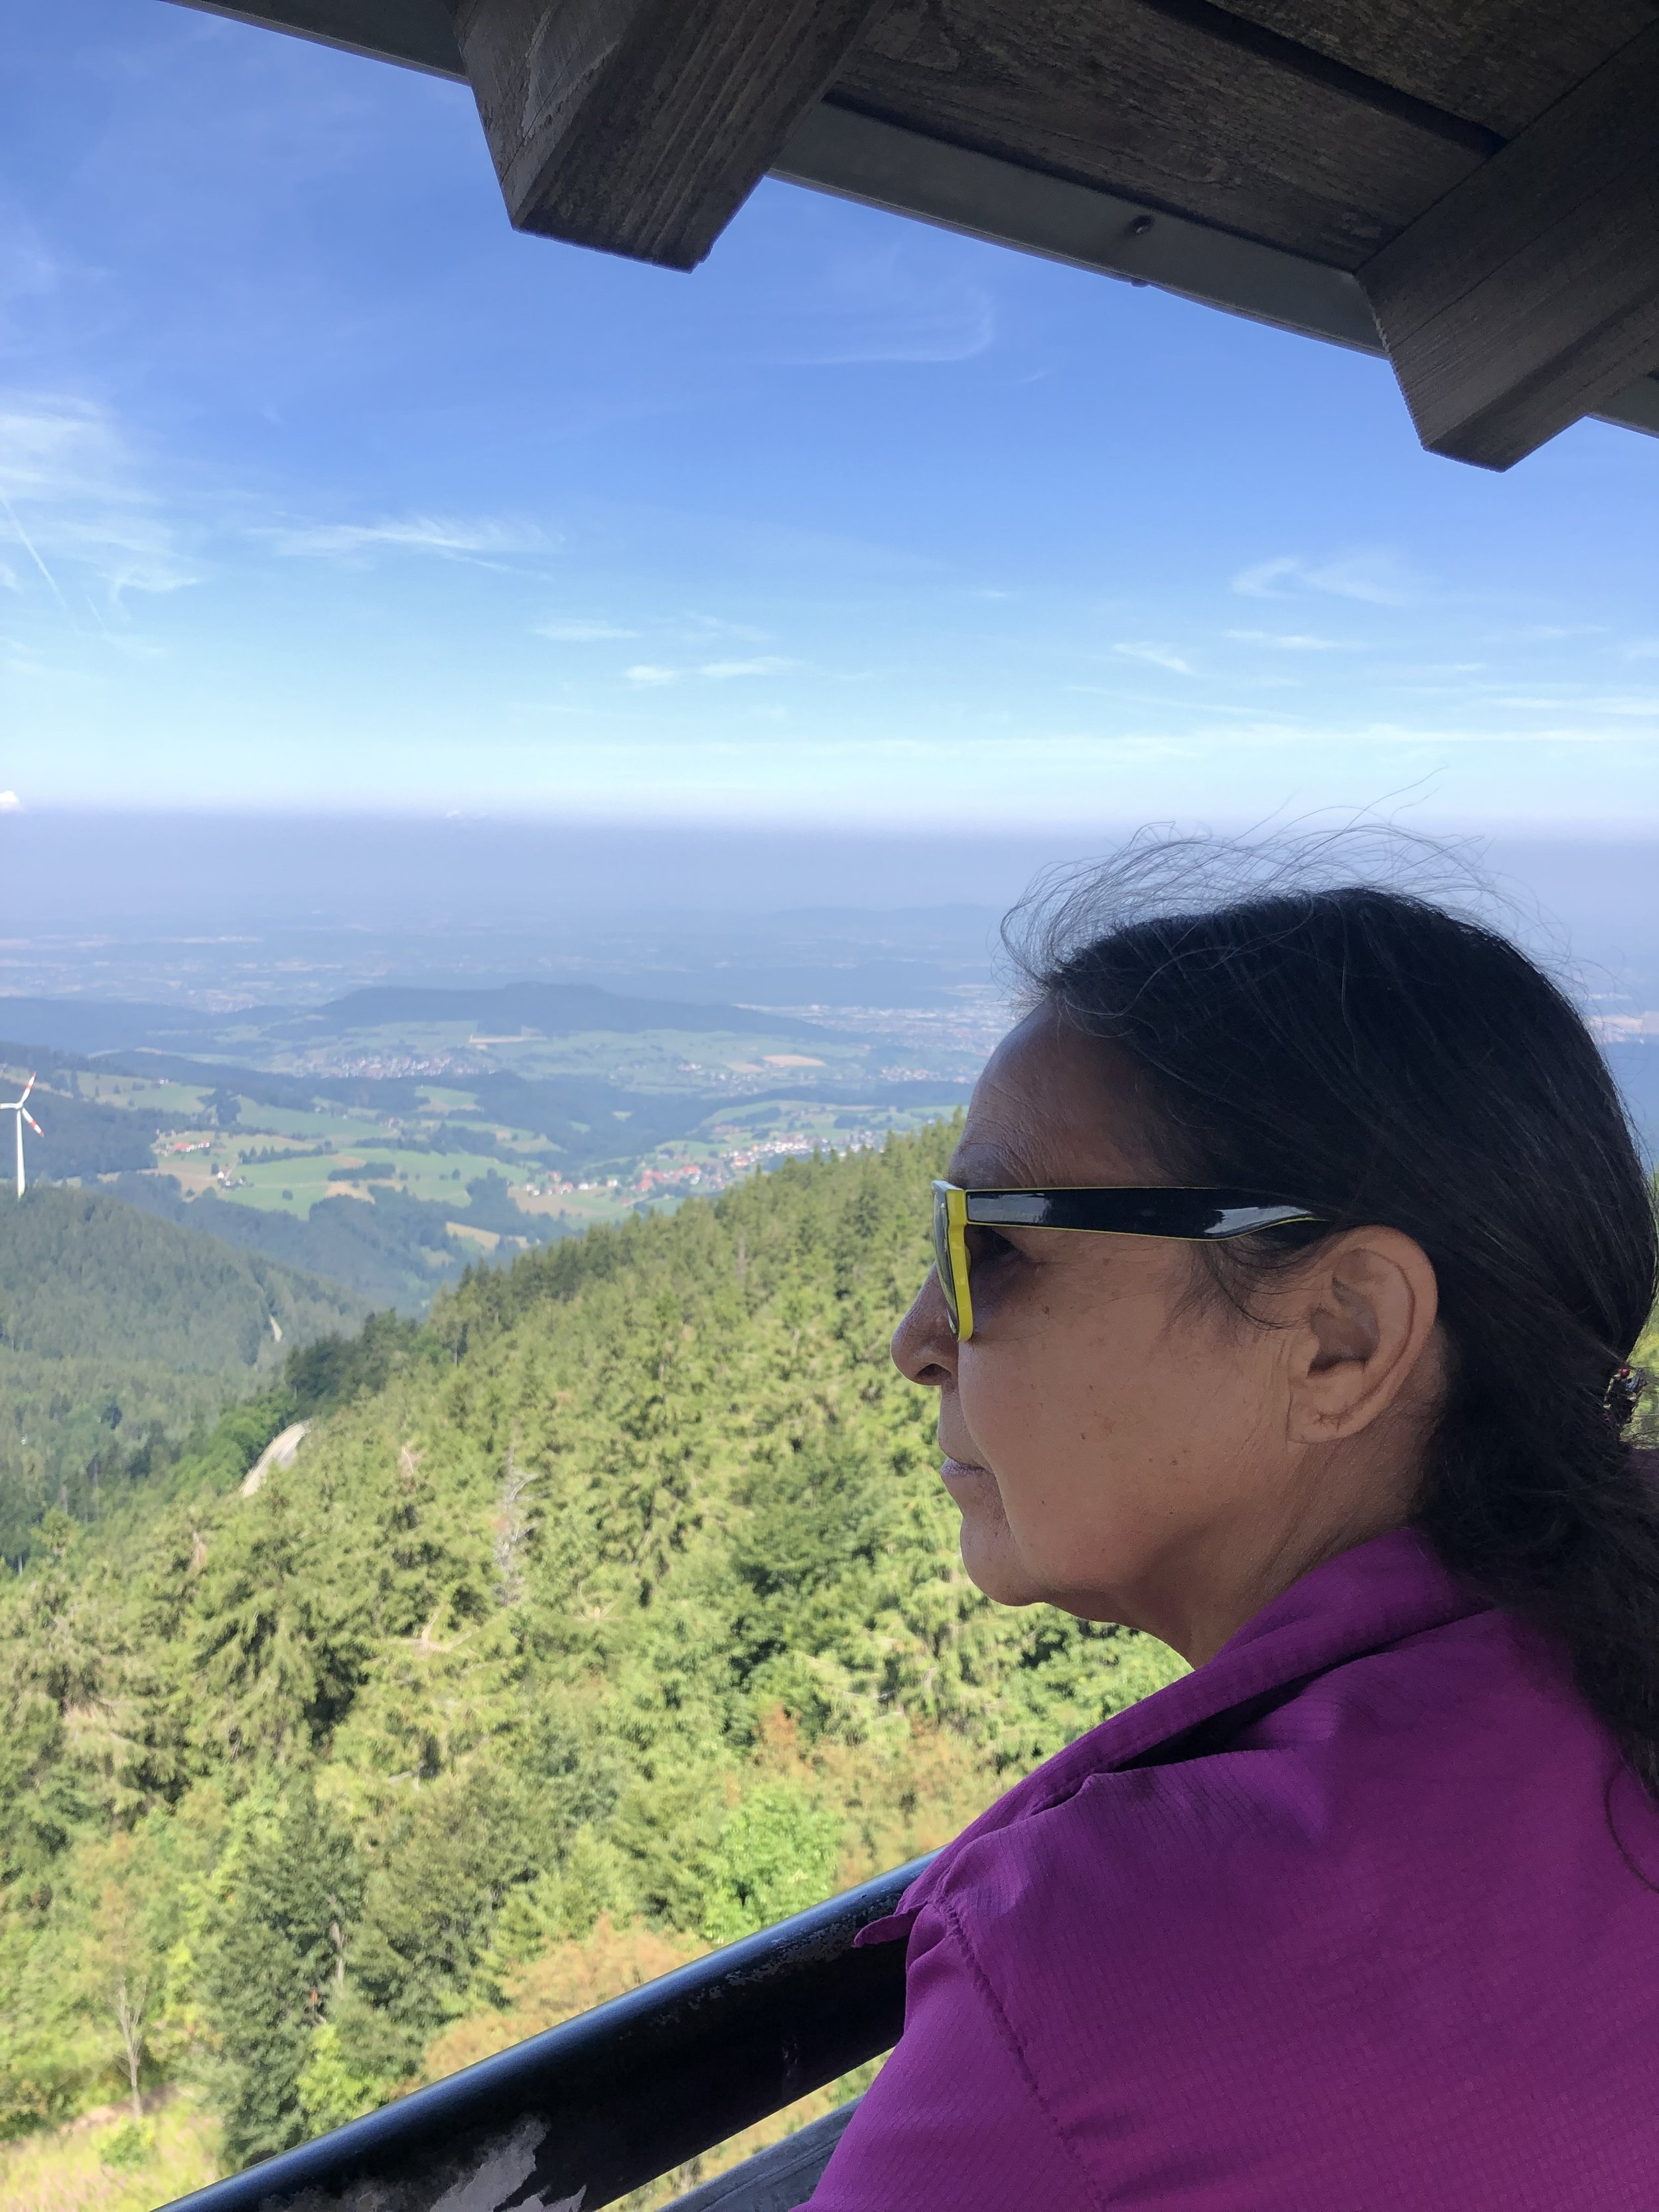 From an observation tower in the Black Forest we could see Switzerland and France. We were told that on a clear day Igor Mountain in the Alps was visible.